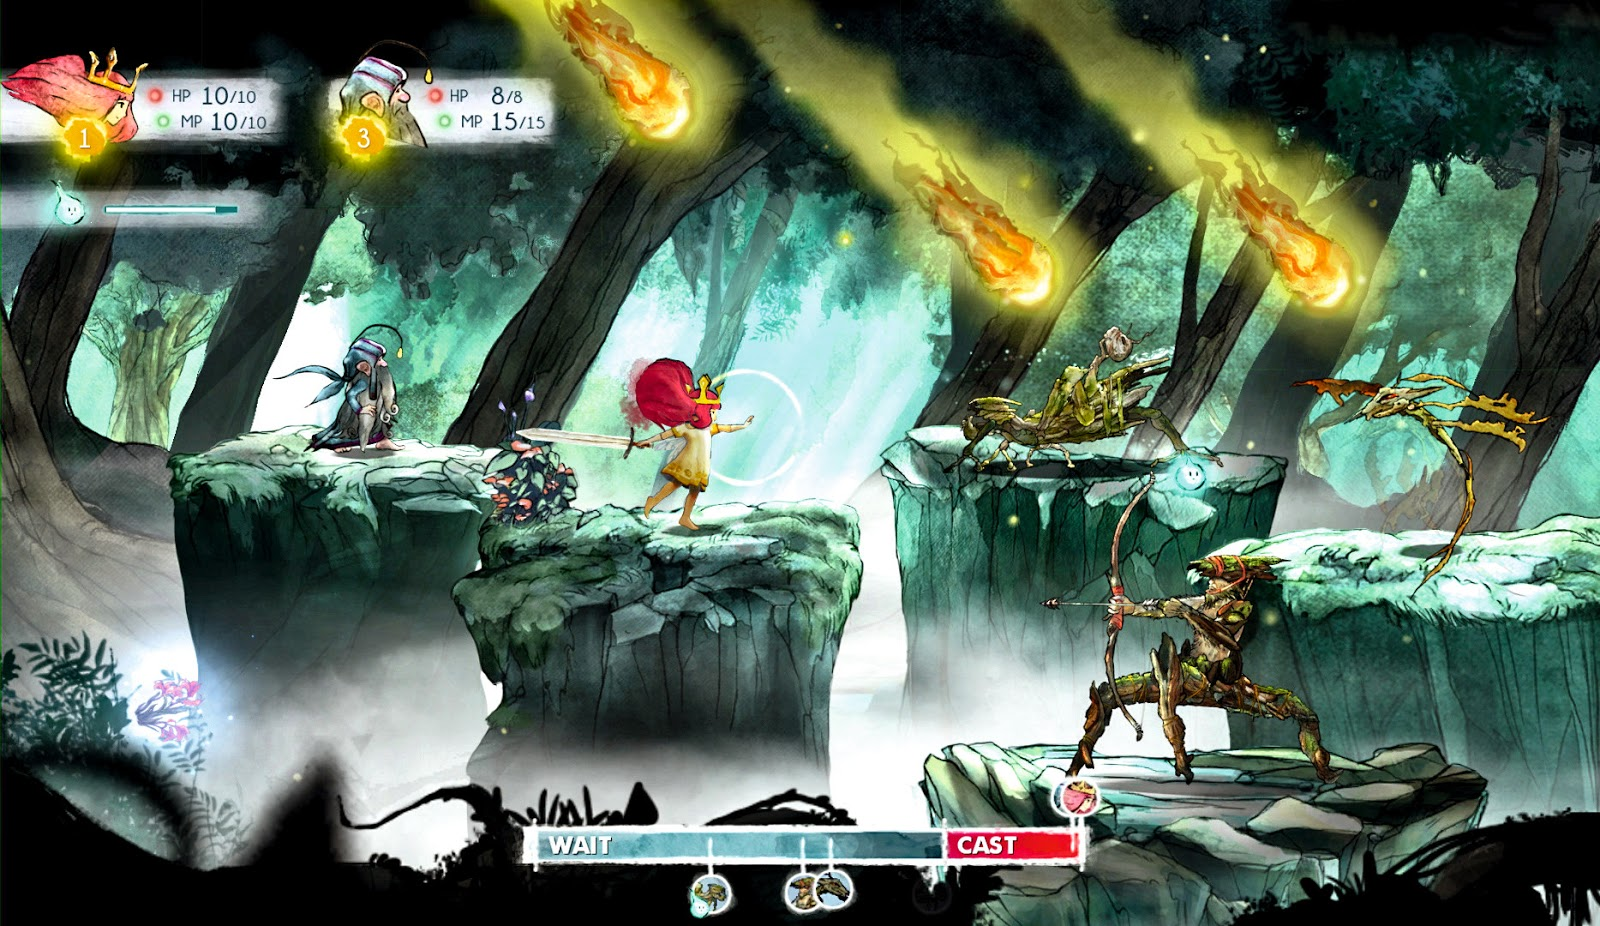 http://www.pcgamer.com/previews/child-of-light-first-look-tactical-turn-based-combat-in-a-beautiful-fairytale-world/